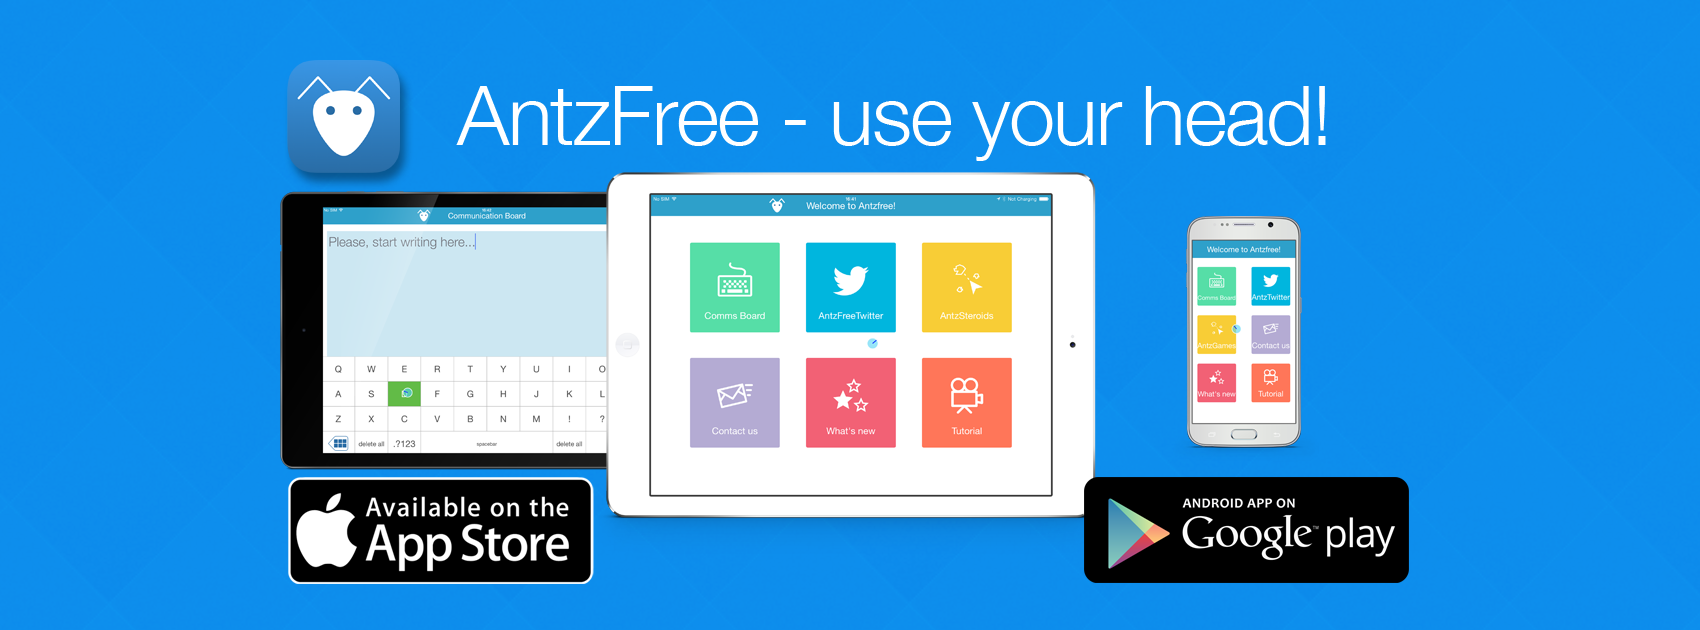 Website pages for AntzFree, a free IOS and Android app for control of devices through head movement.